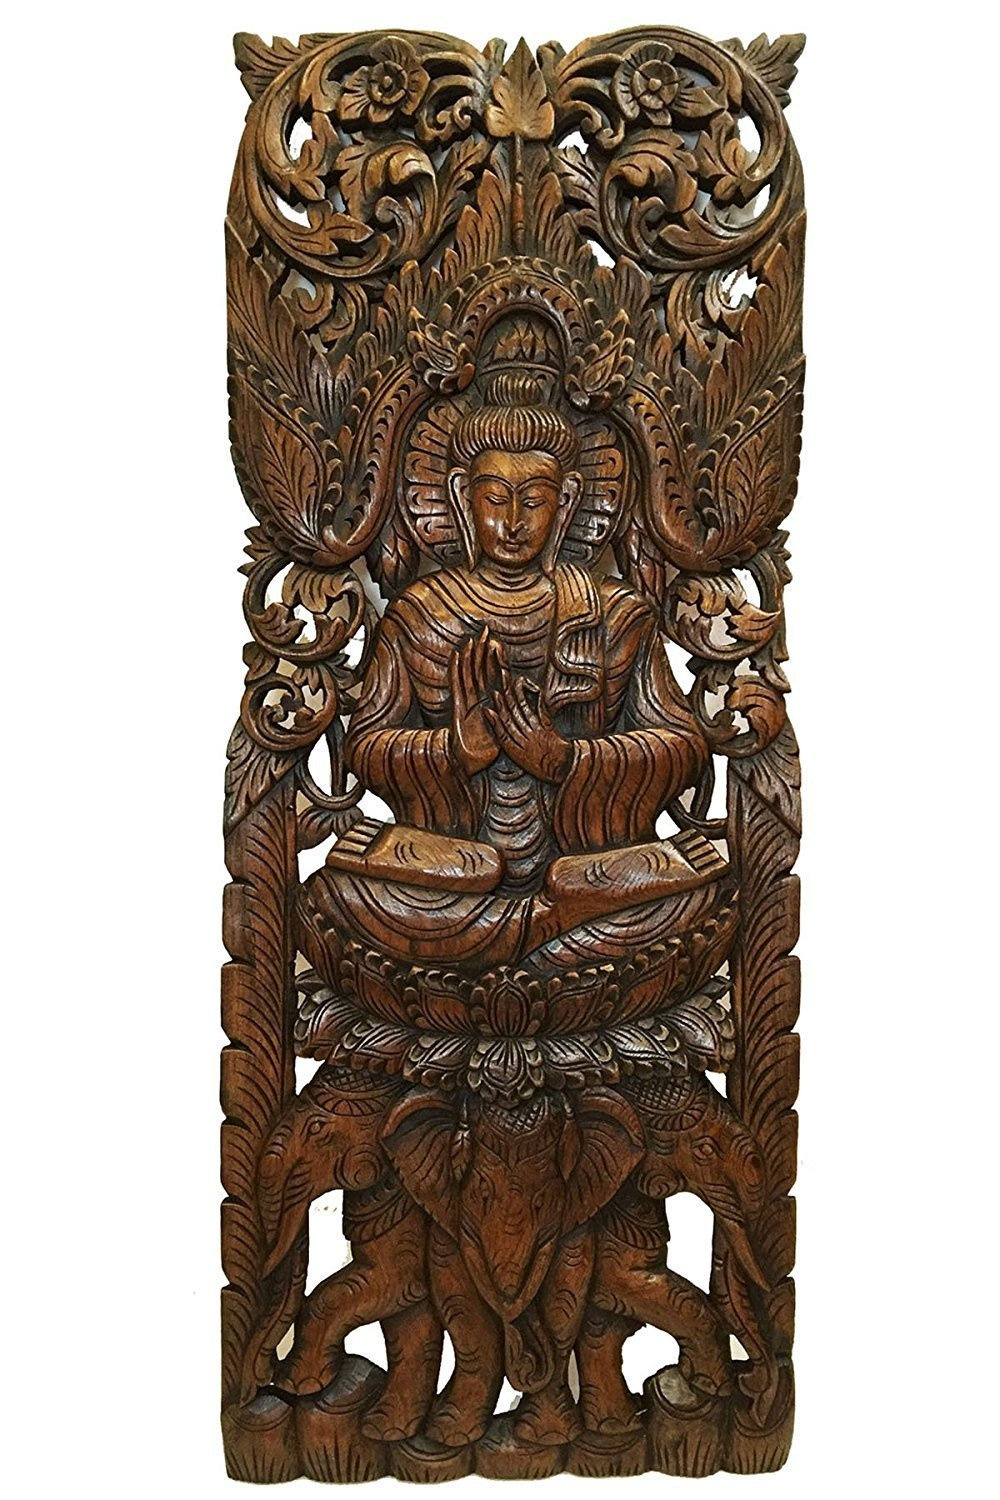 Buddha Thailand Large - Thai Wood Carving Art Wall Home Decor 35.5'' x 13.5'' inces. #P19 by Conserve Brand